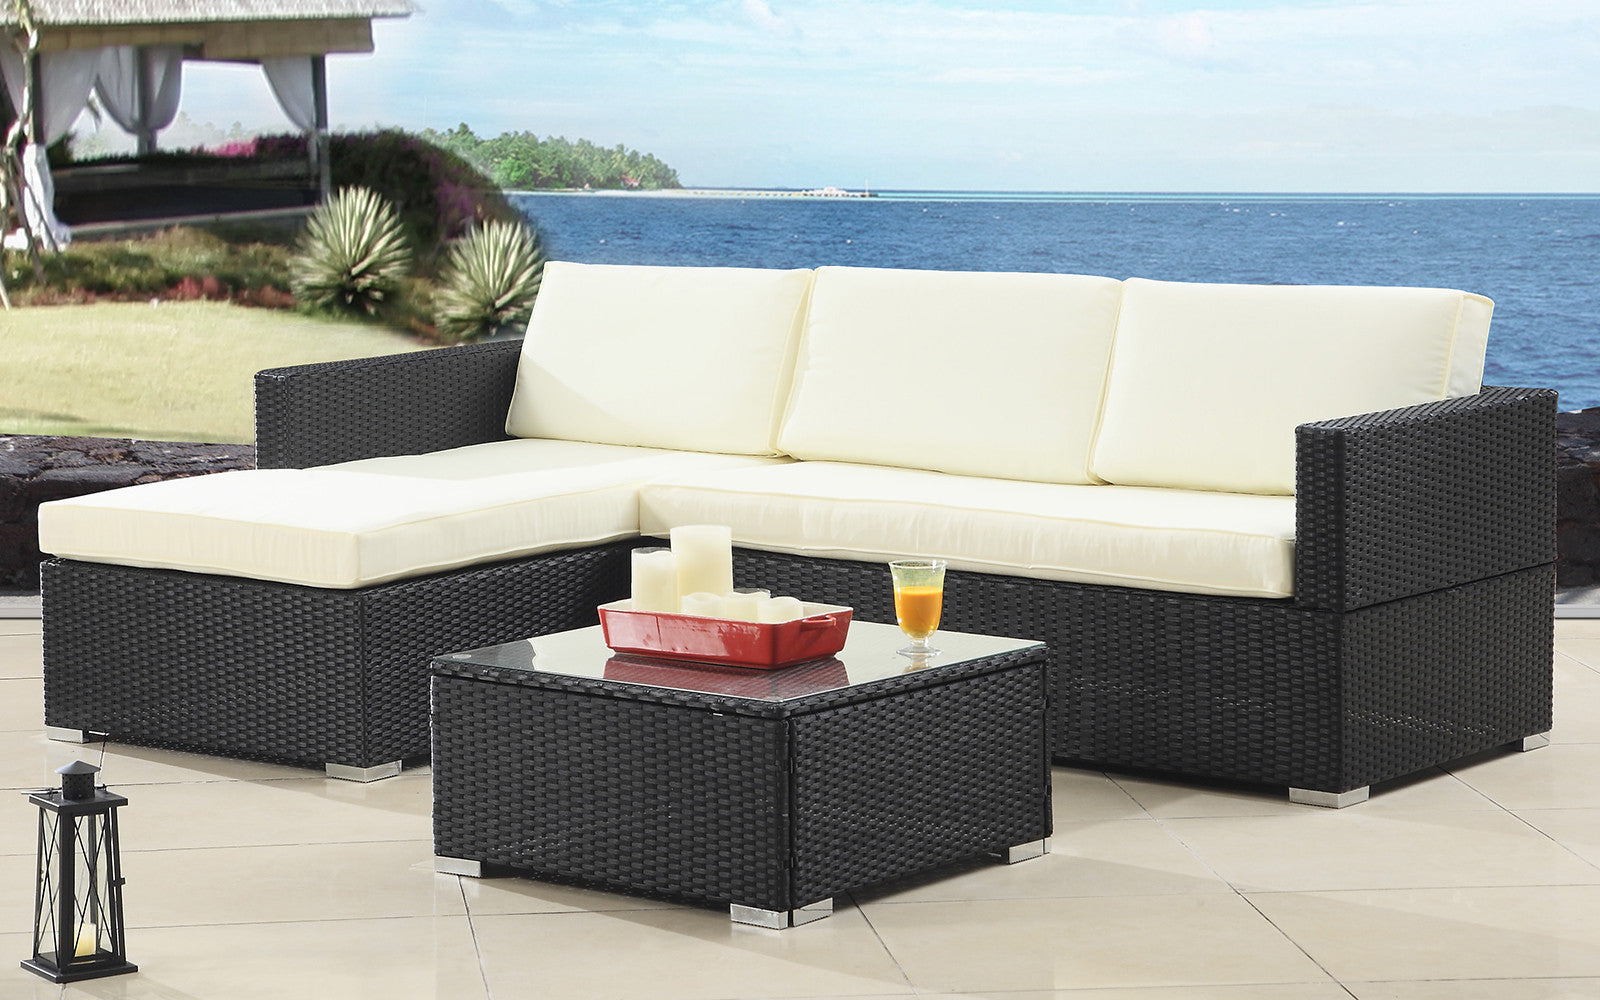 ... Hilo Modern Outdoor Sectional With Coffee Table In Ivory And Black ...